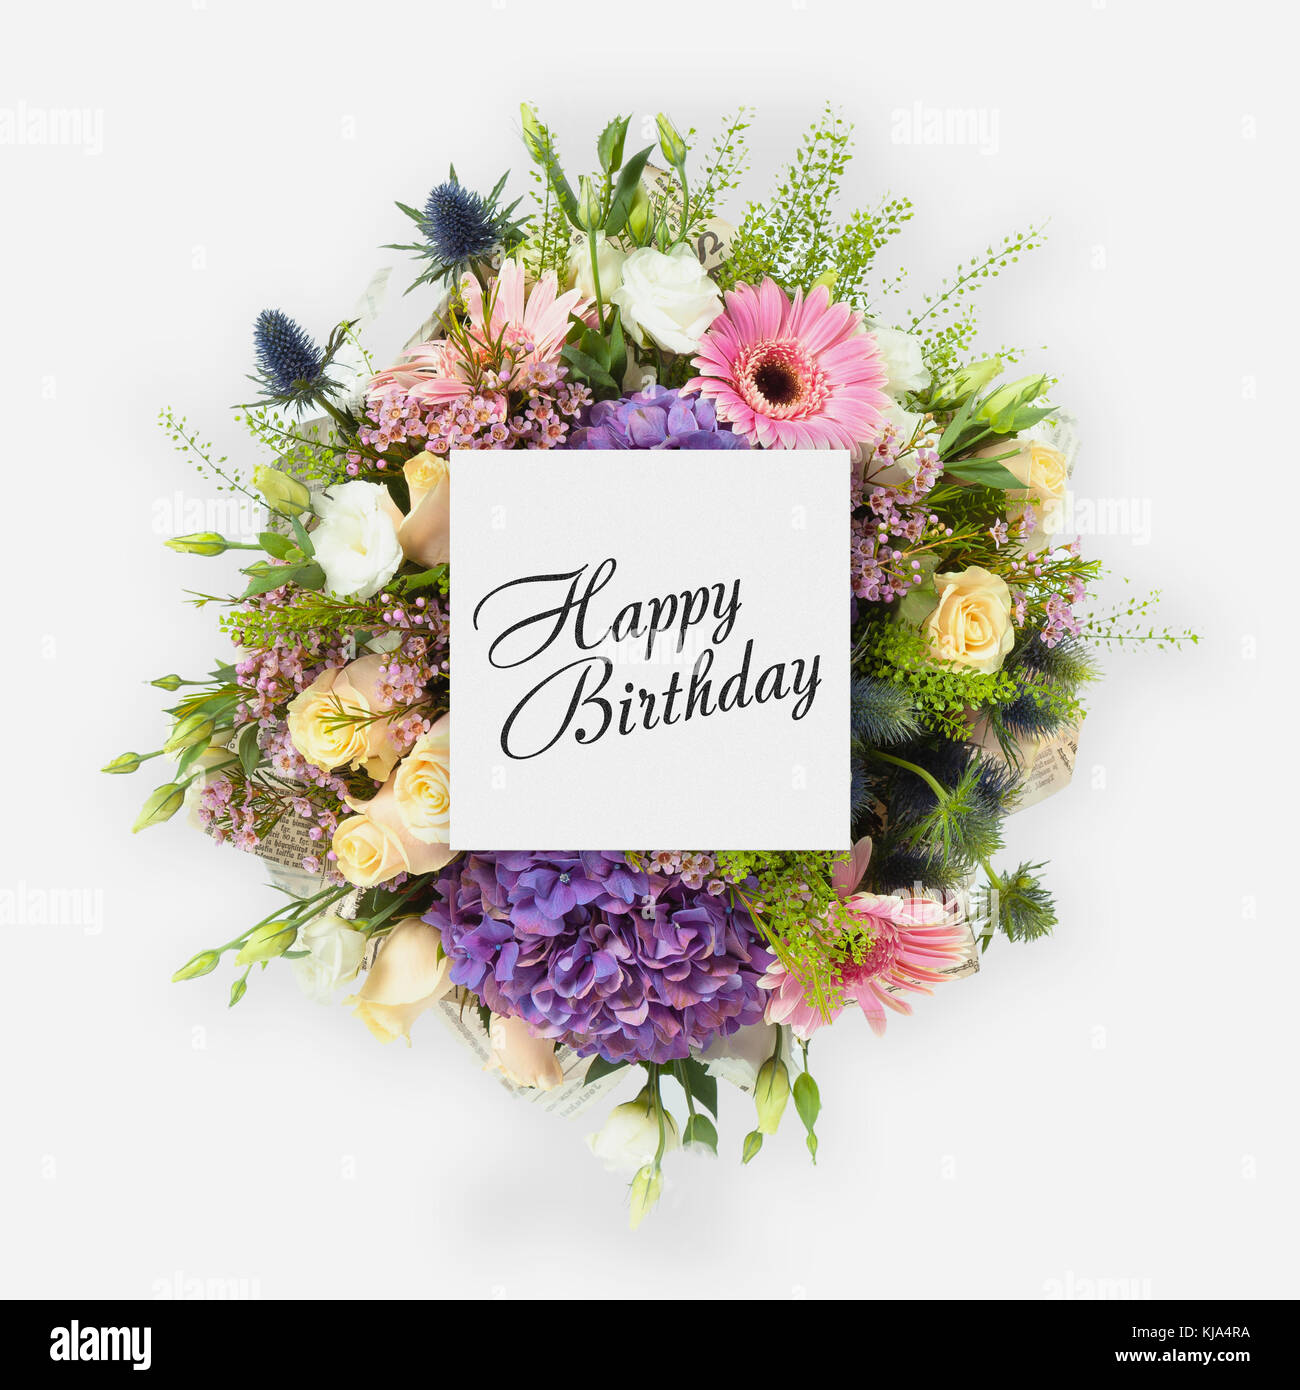 Happy birthday card with flowers flat lay stock photo 166180430 alamy happy birthday card with flowers flat lay izmirmasajfo